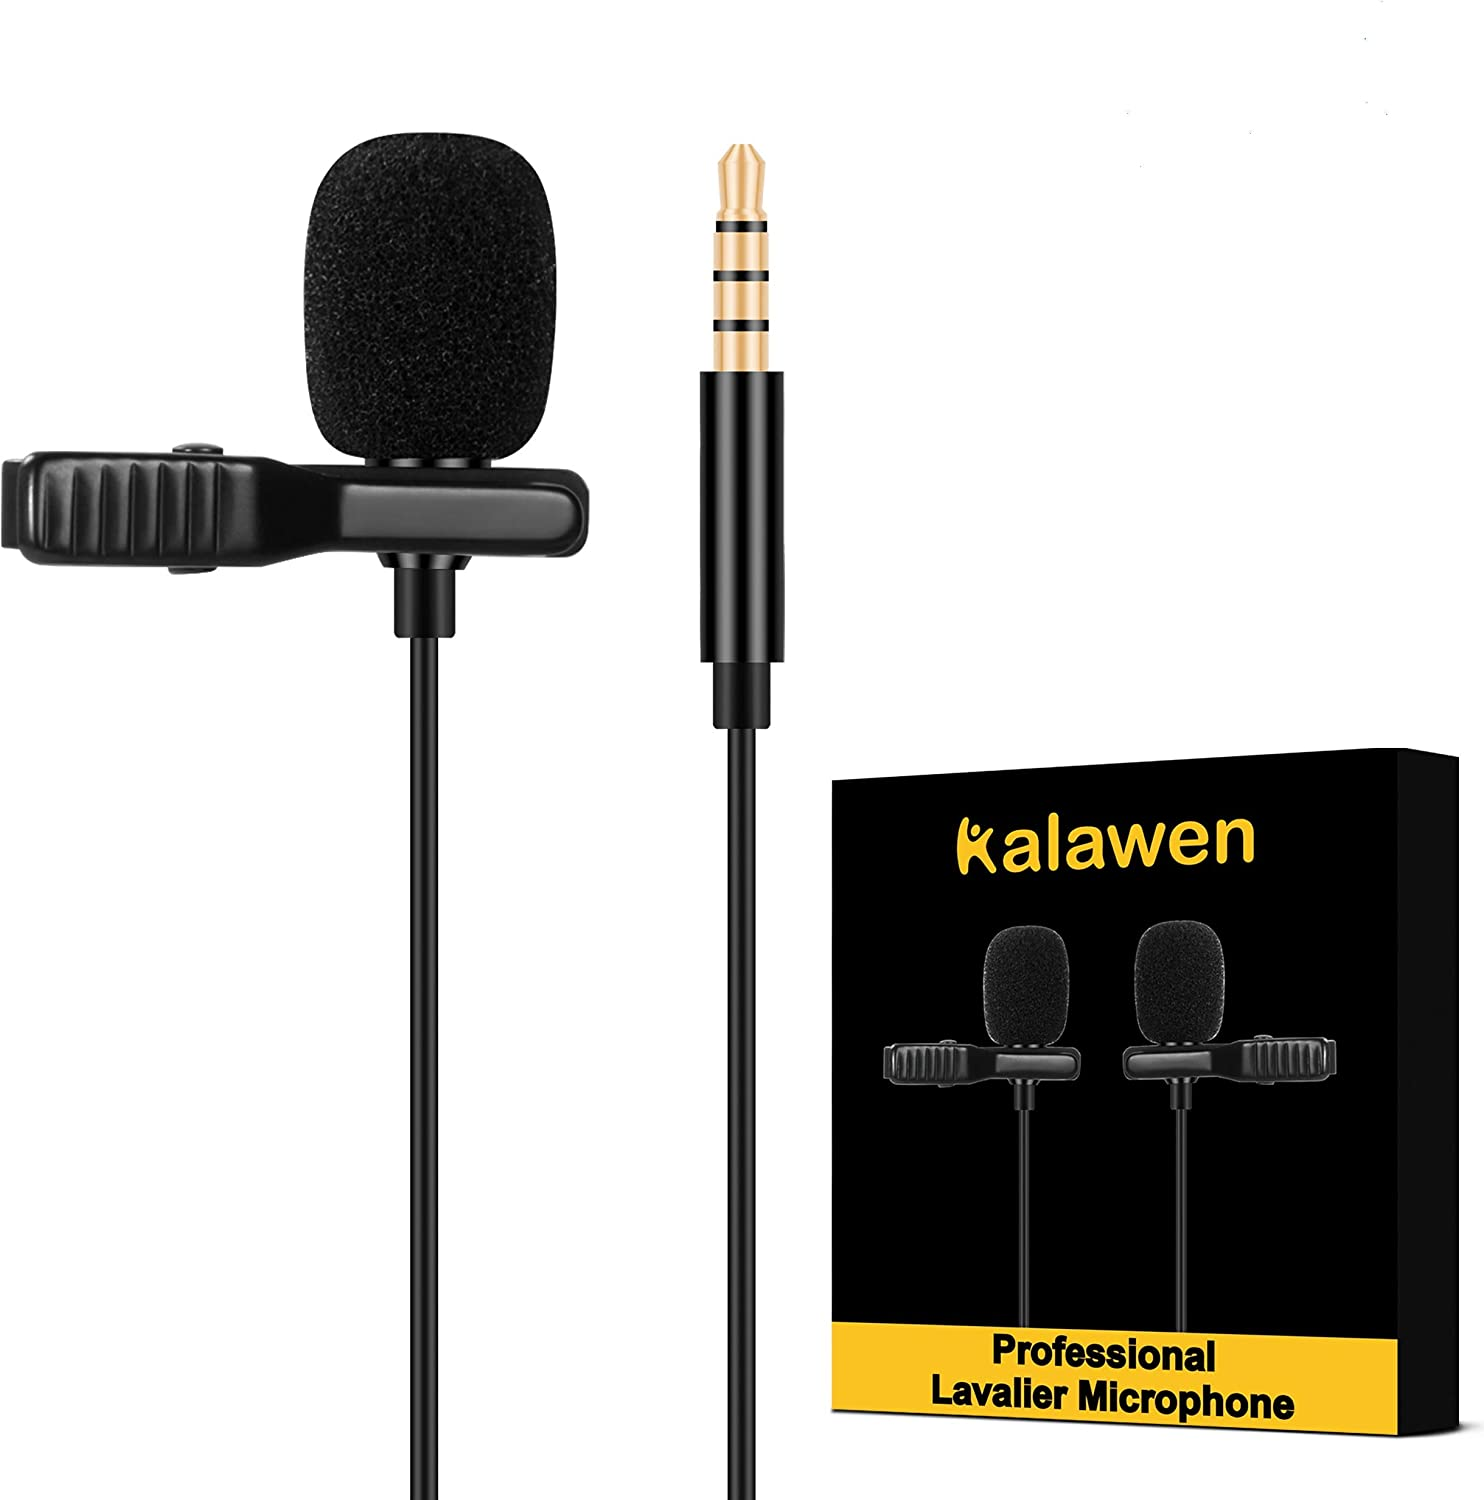 Kalawen Lavalier Microphone 2 Omnidirectional Condenser Lapel Mic For 3 5 Mm Android Smartphone Iphone Pc And Camera With Two 2 M Microphone Extension Cable For Interview Video Conferencing Podcast Musical Instruments